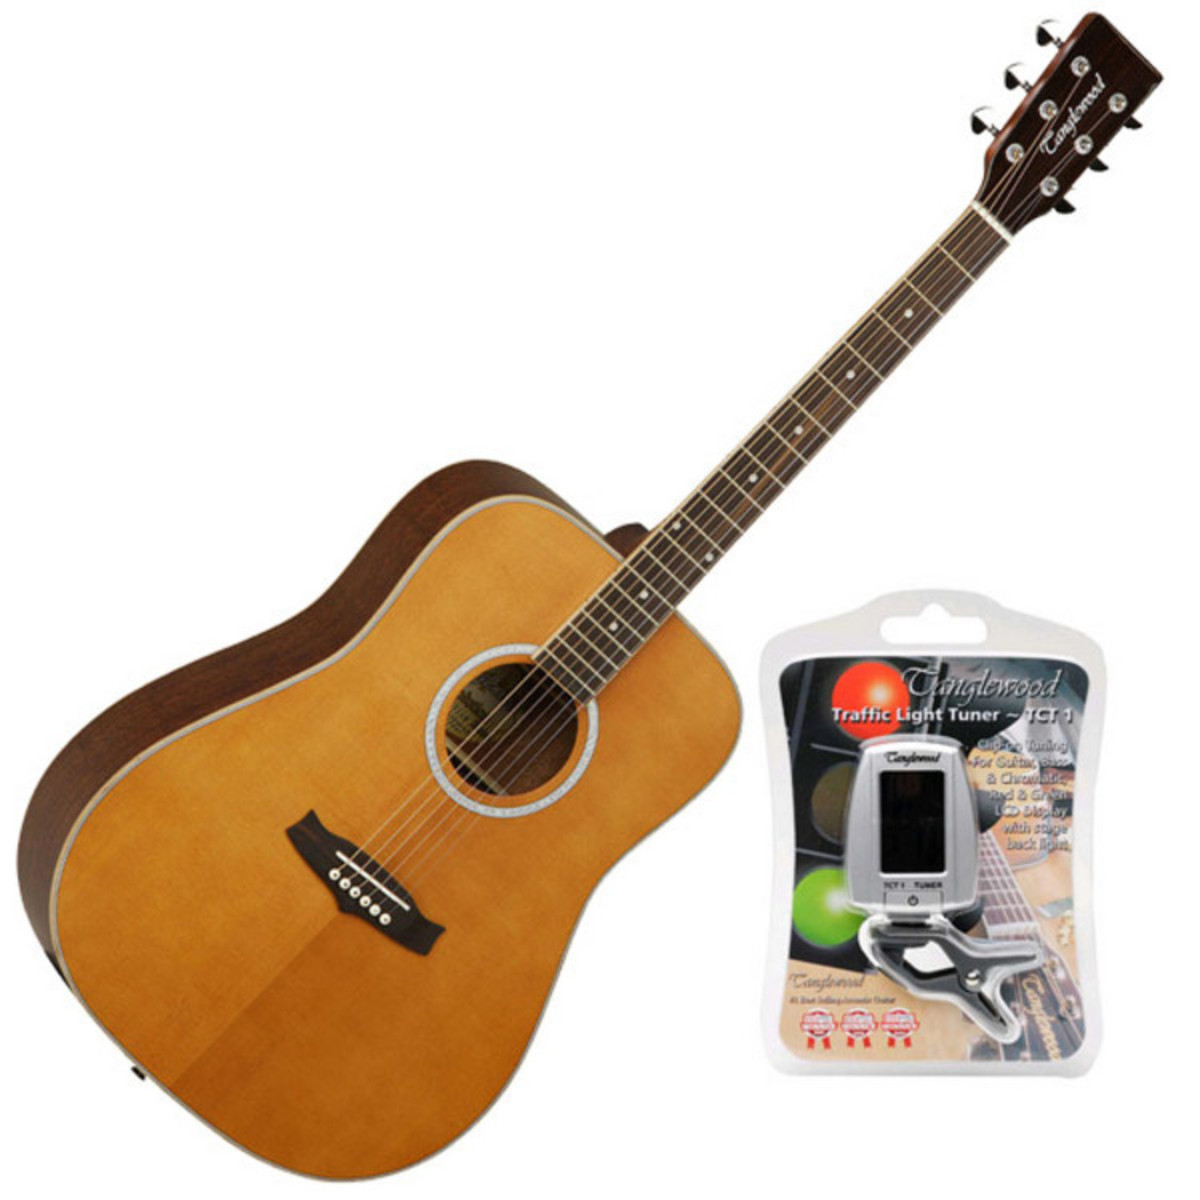 disc tanglewood evolution tw28 acoustic guitar natural free tuner at. Black Bedroom Furniture Sets. Home Design Ideas